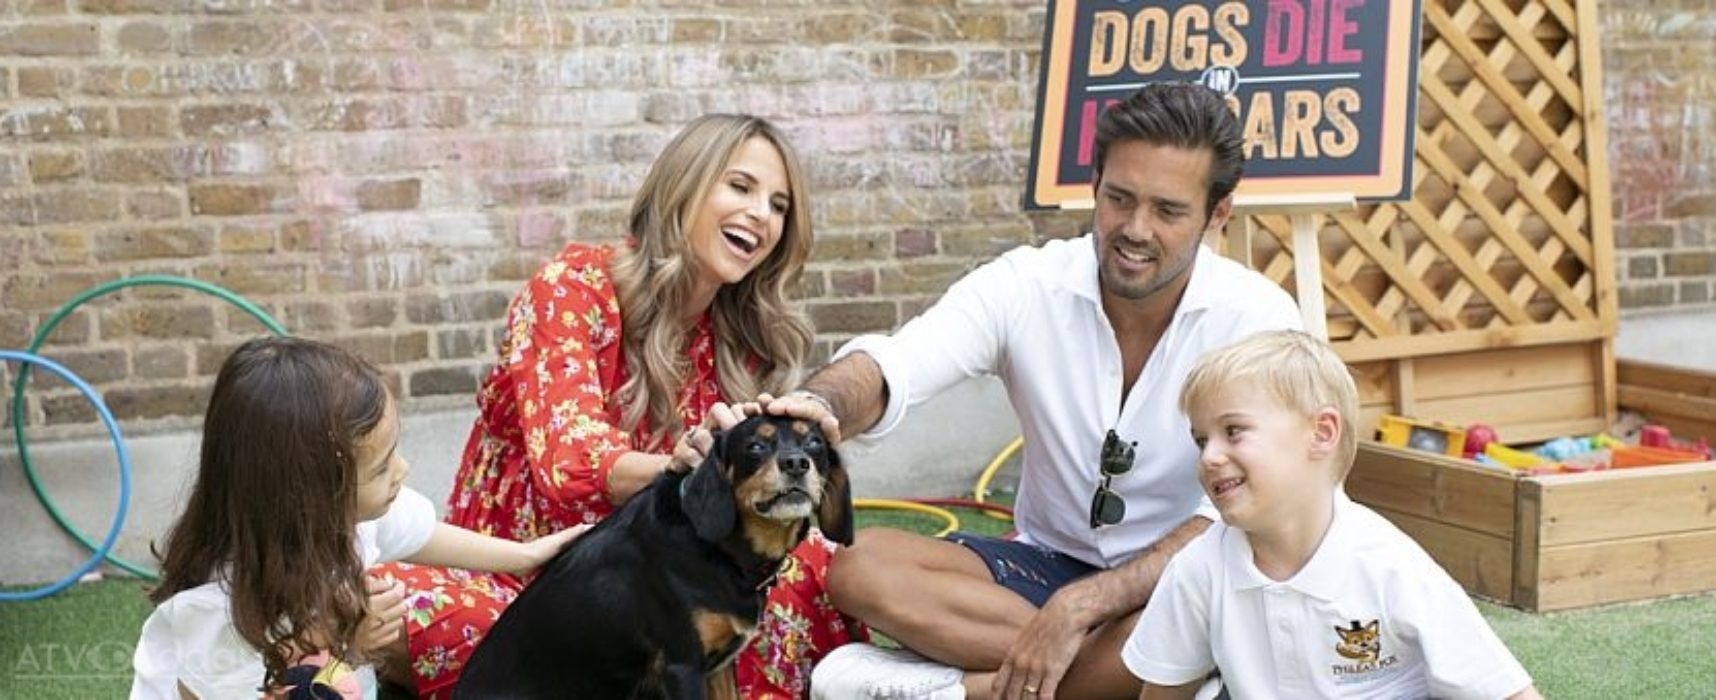 E4 reality series to follow Spencer Matthews and Vogue Williams